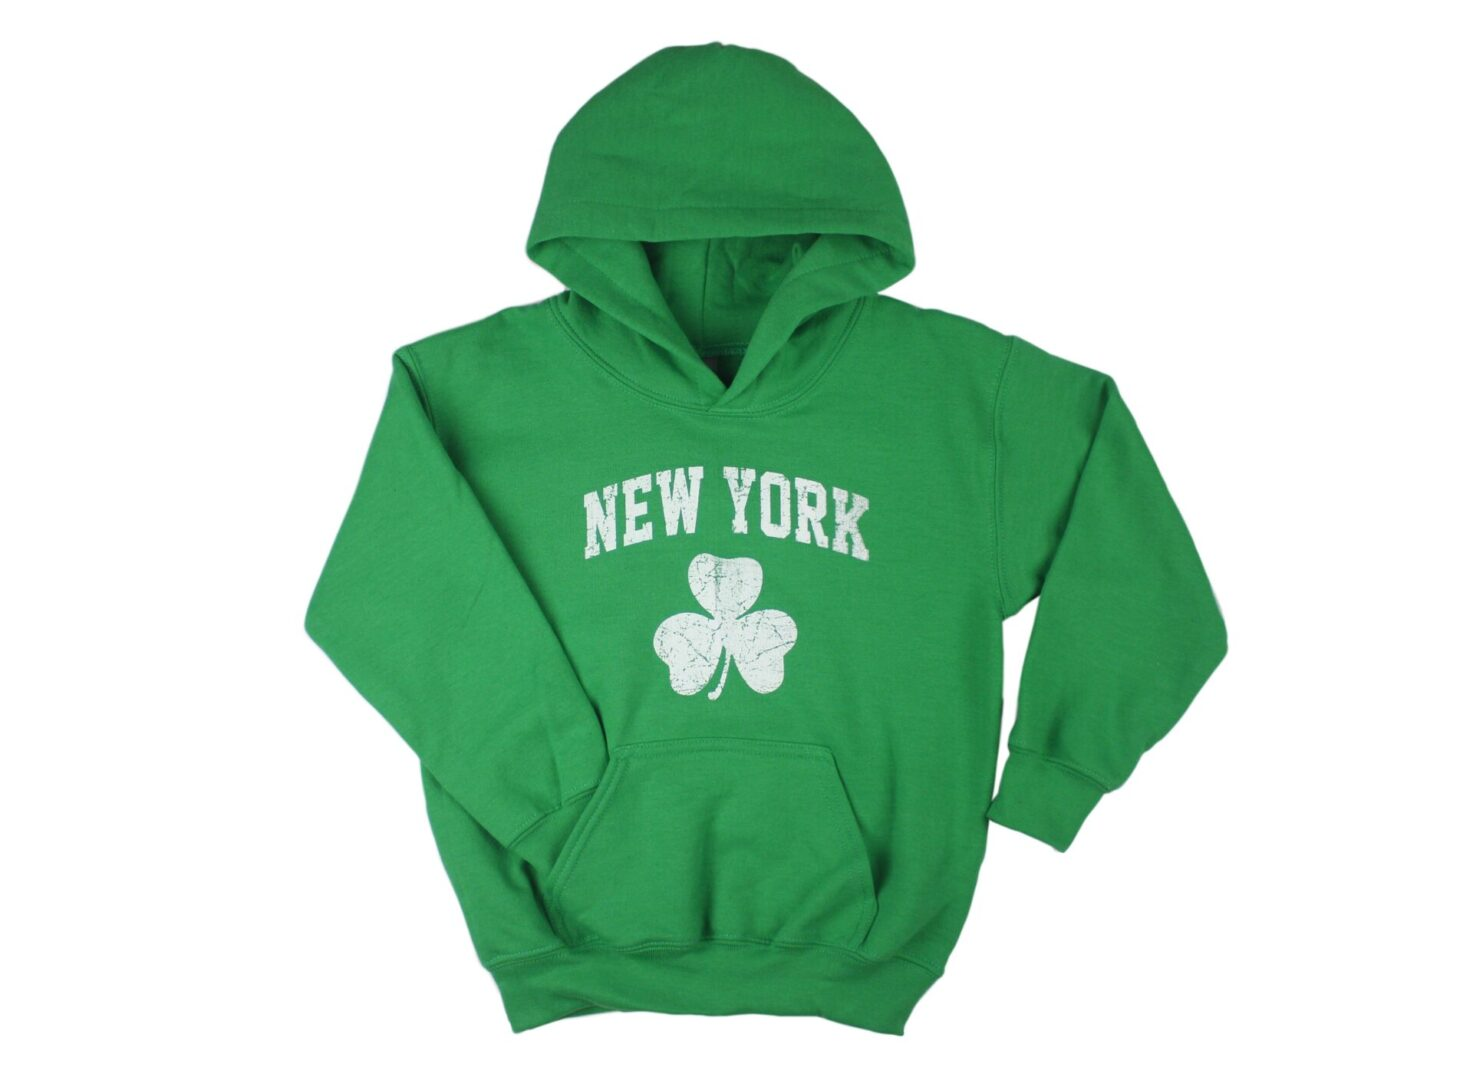 Green hoodie with clover leaf design